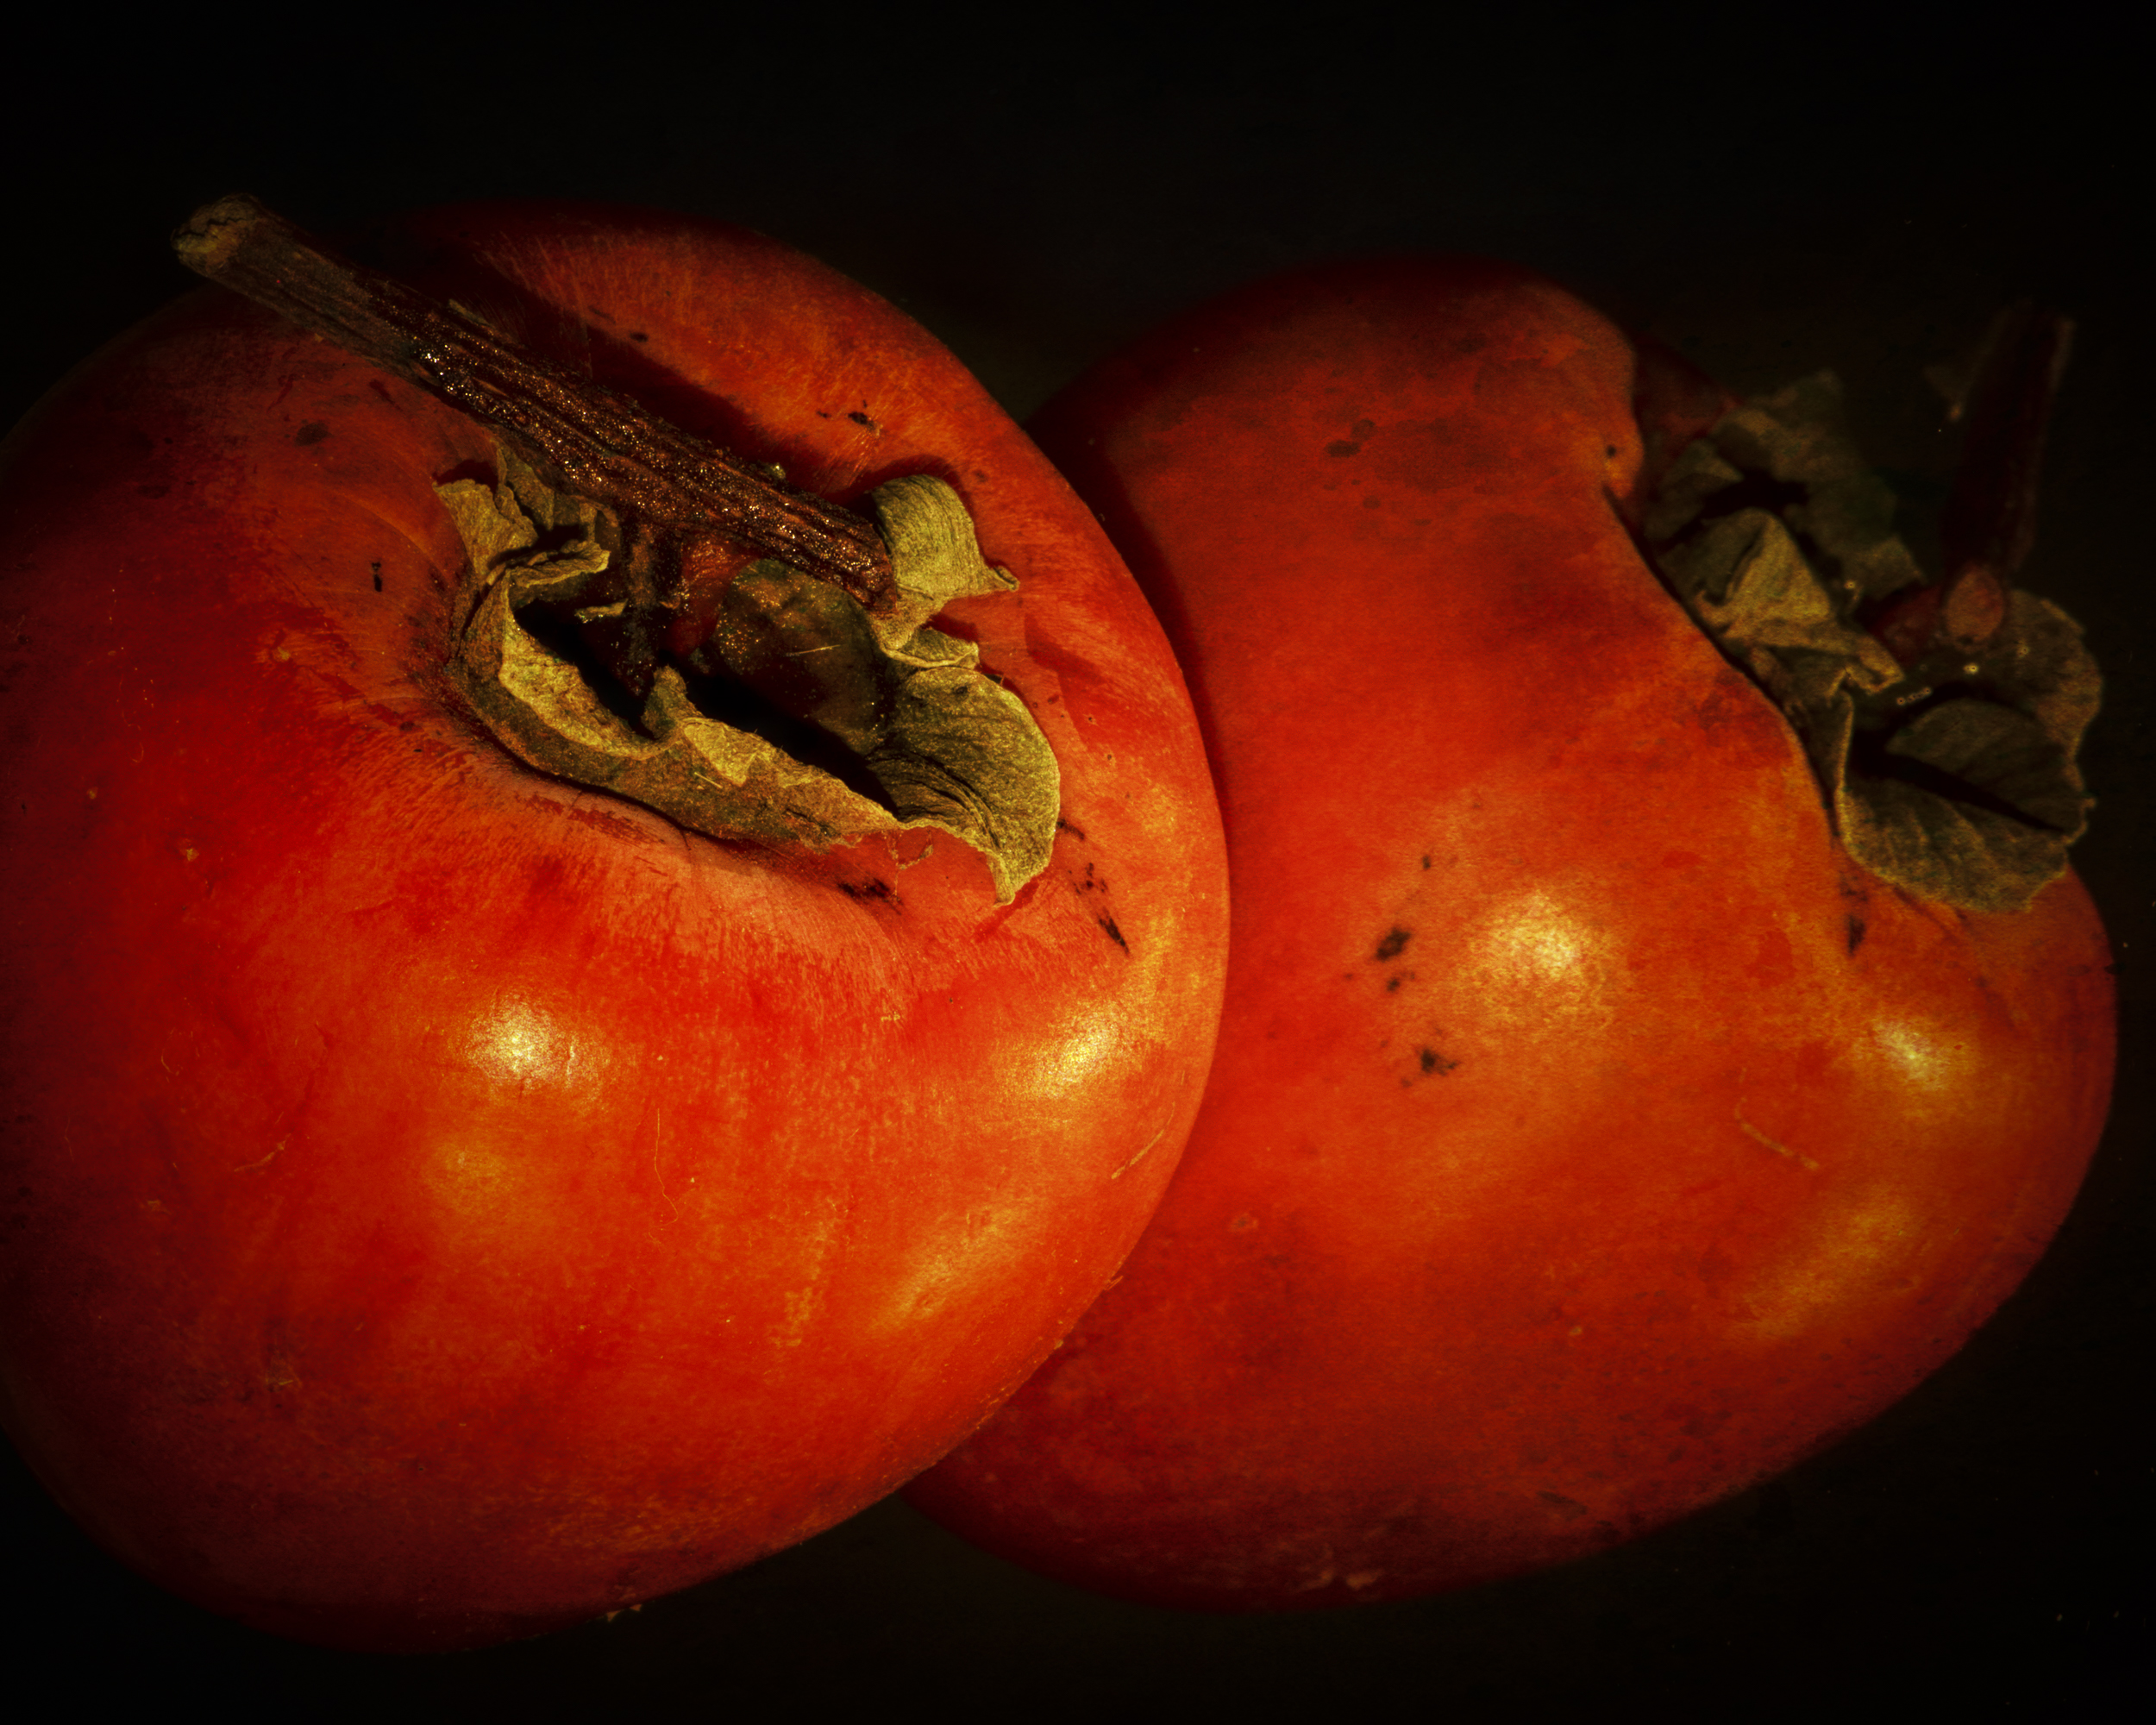 persimmon-8352-Edit